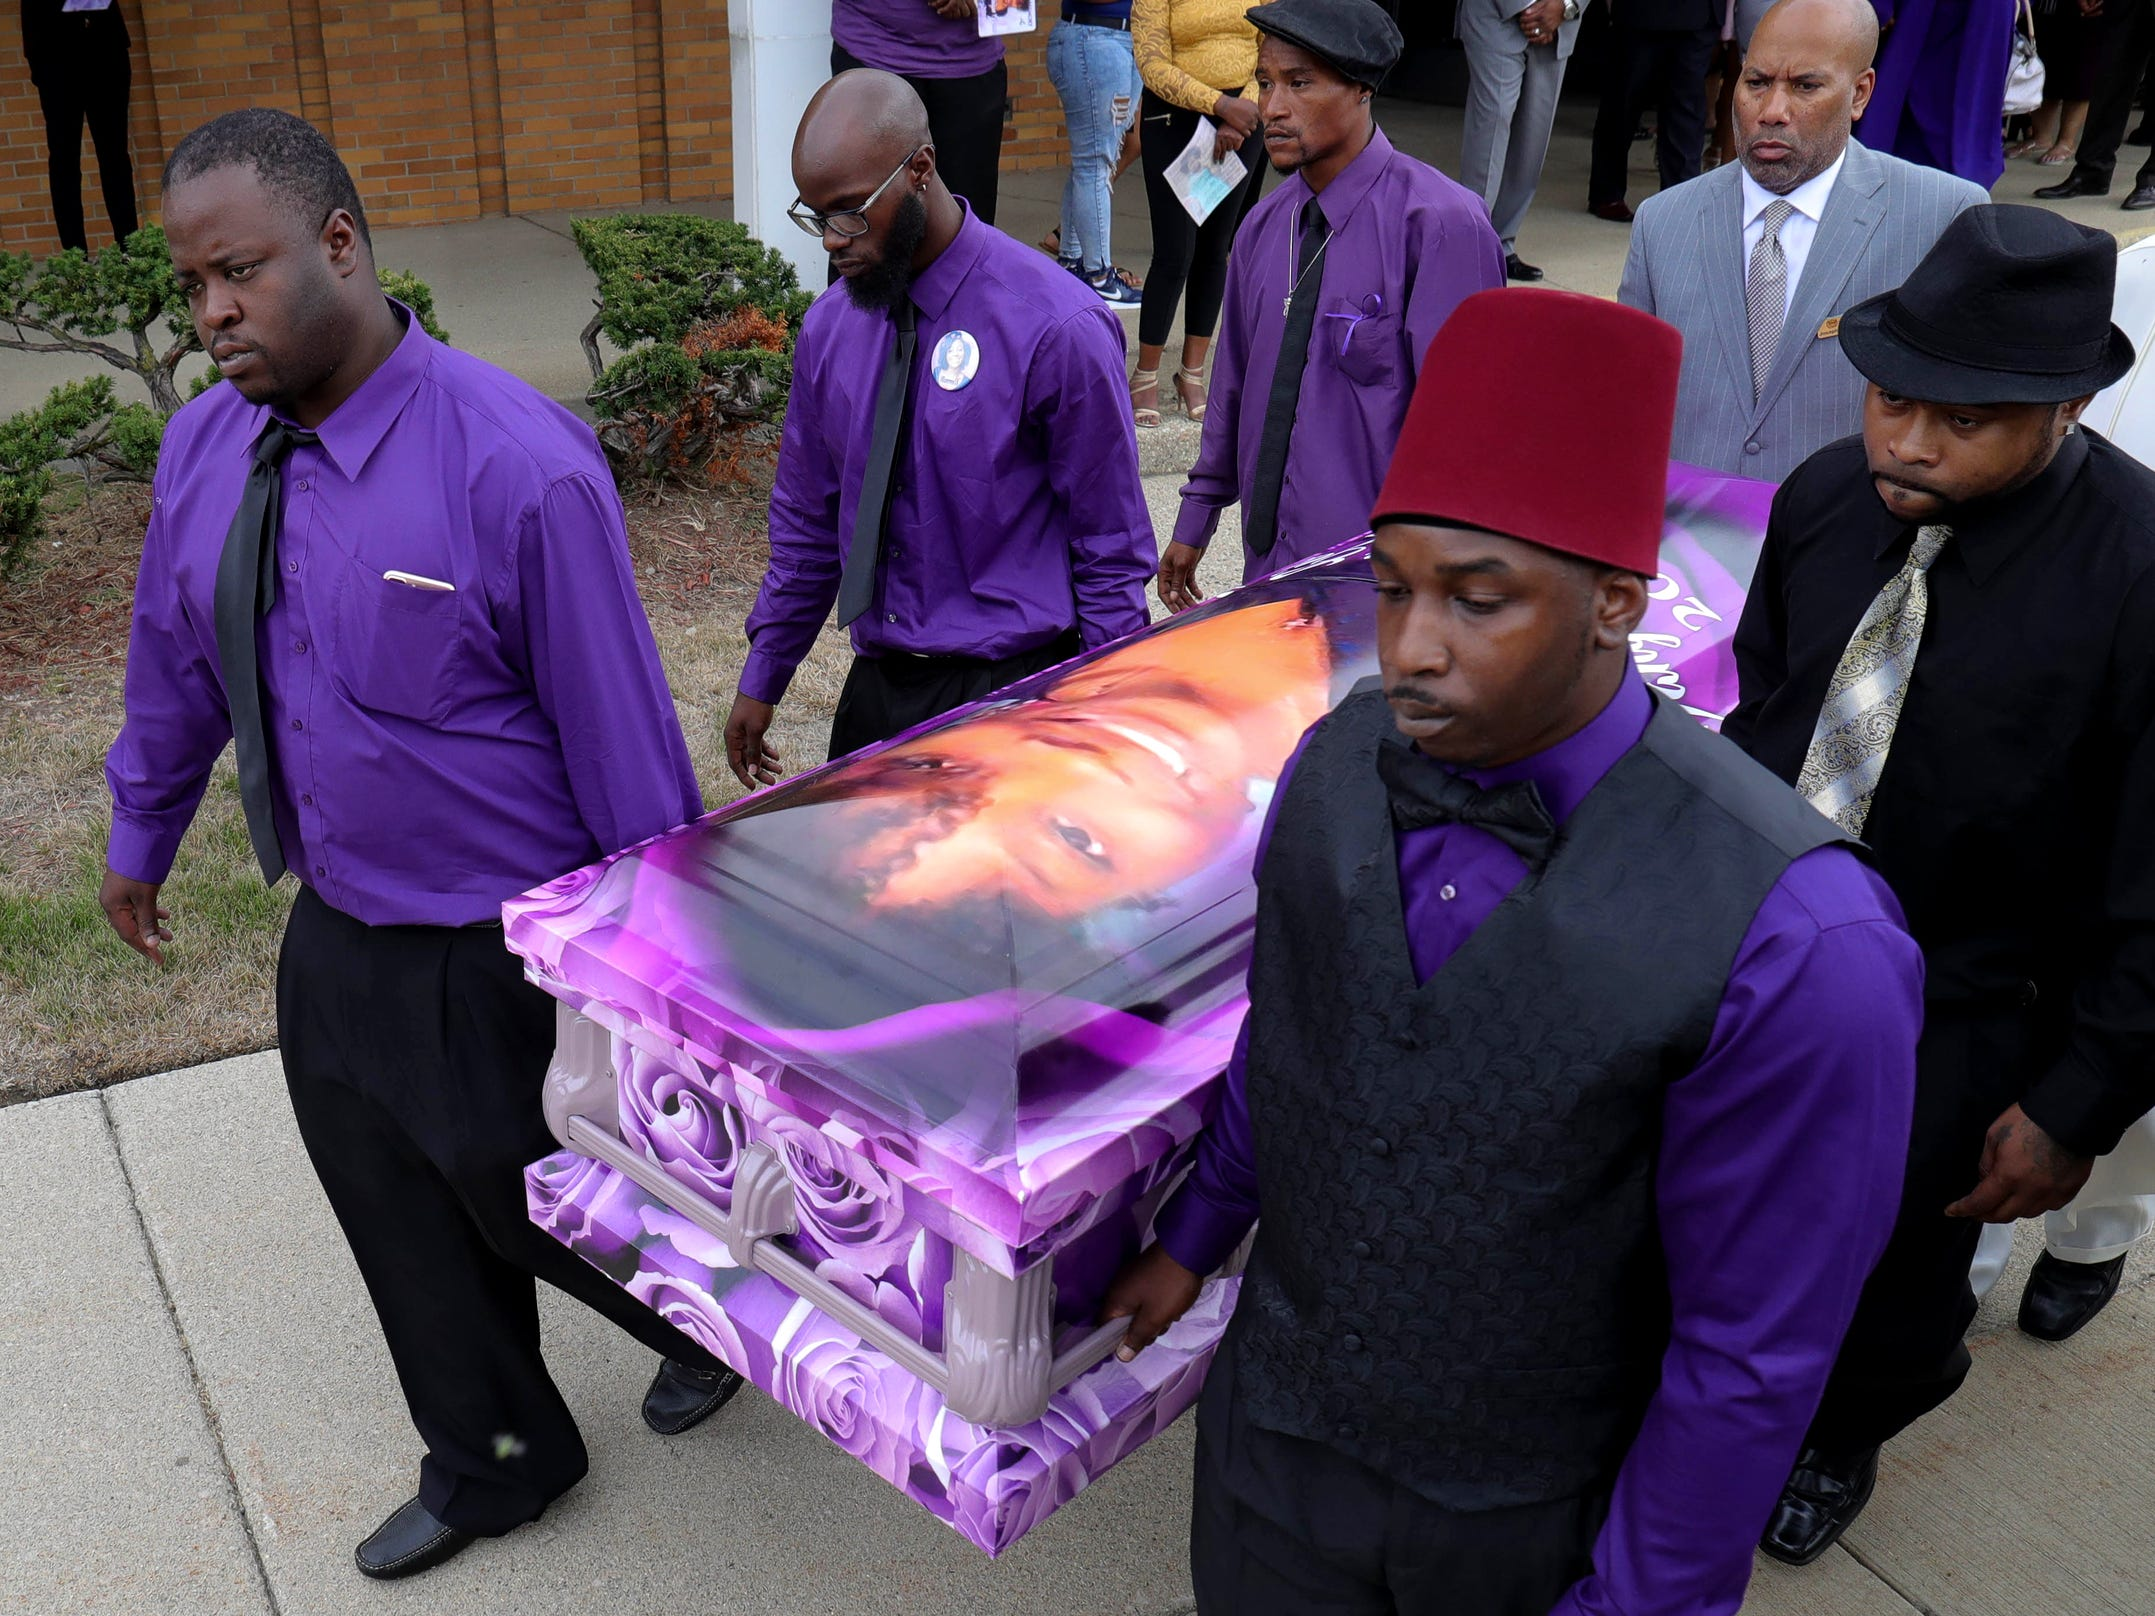 The casket of Danyna Gibson is carried from New St. Paul Missionary Baptist Church after services Wednesday, September 19, 2018 in Warren, Mich.